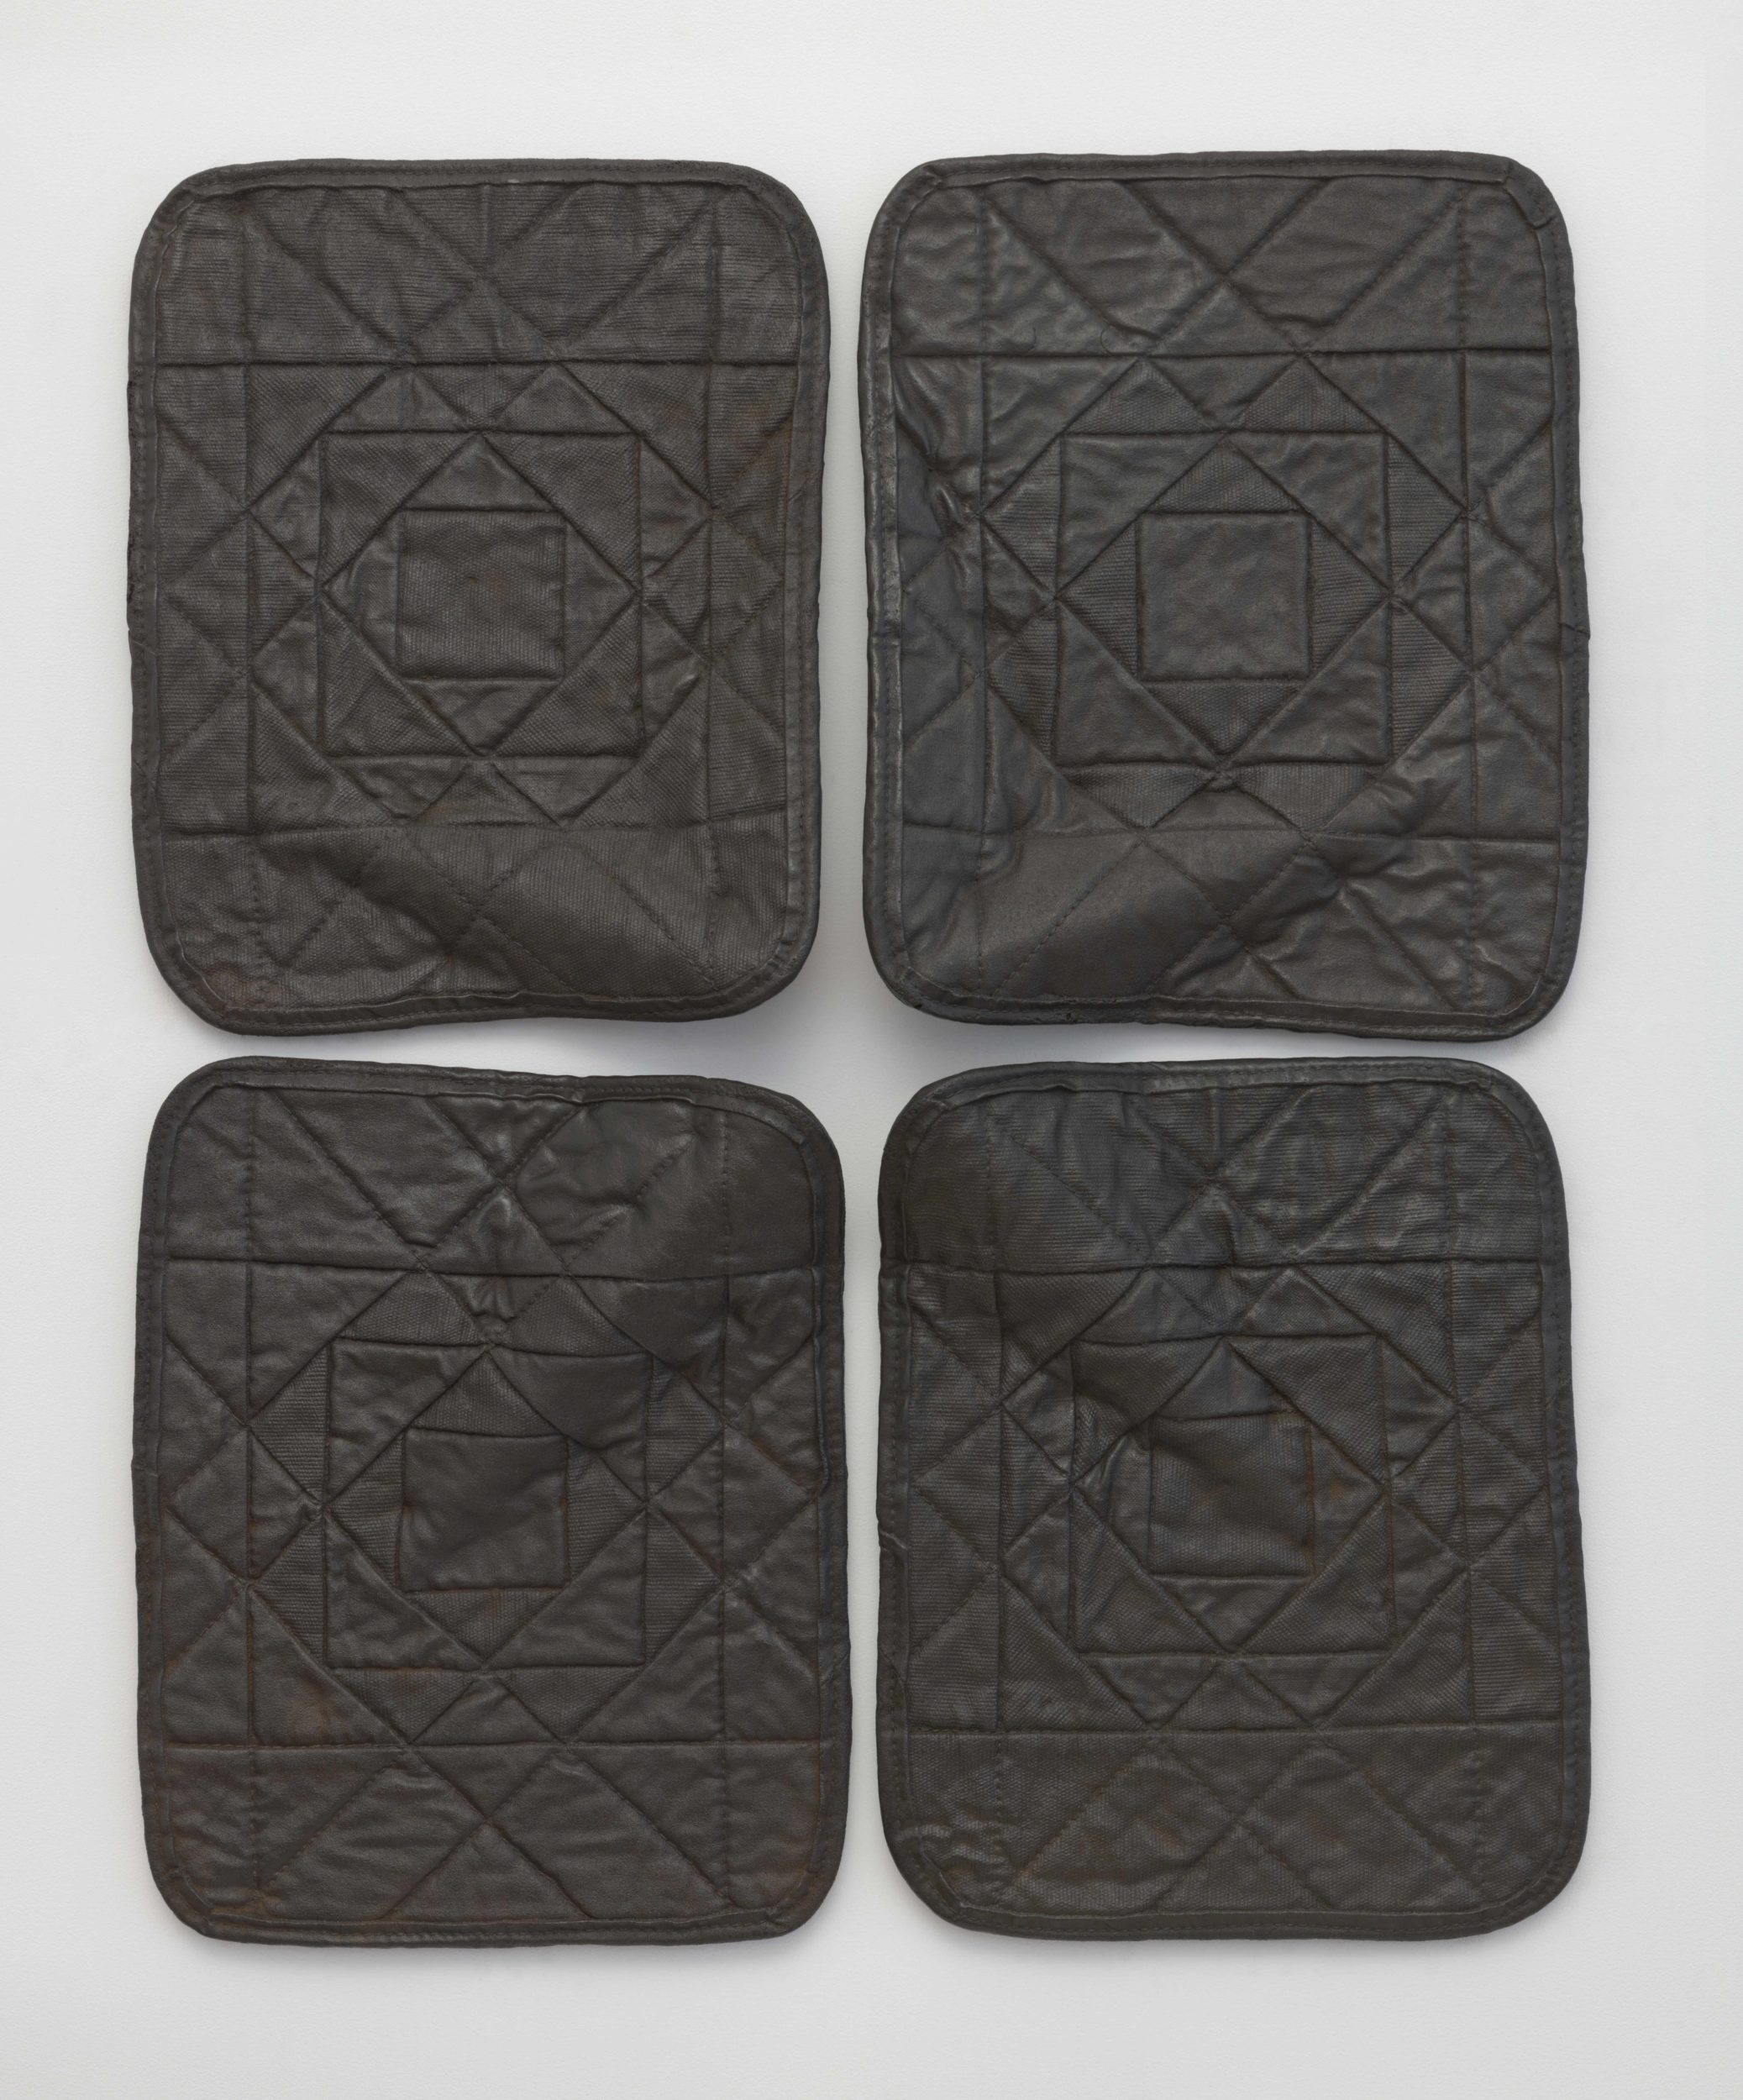 Gavin Kenyon, Star Quilt, 2017 | Cast iron Four parts; 19 1/2 x 15 1/2 x 3 1/2 inches each 39 3/4 x 32 1/2 x 3 1/2 inches overall